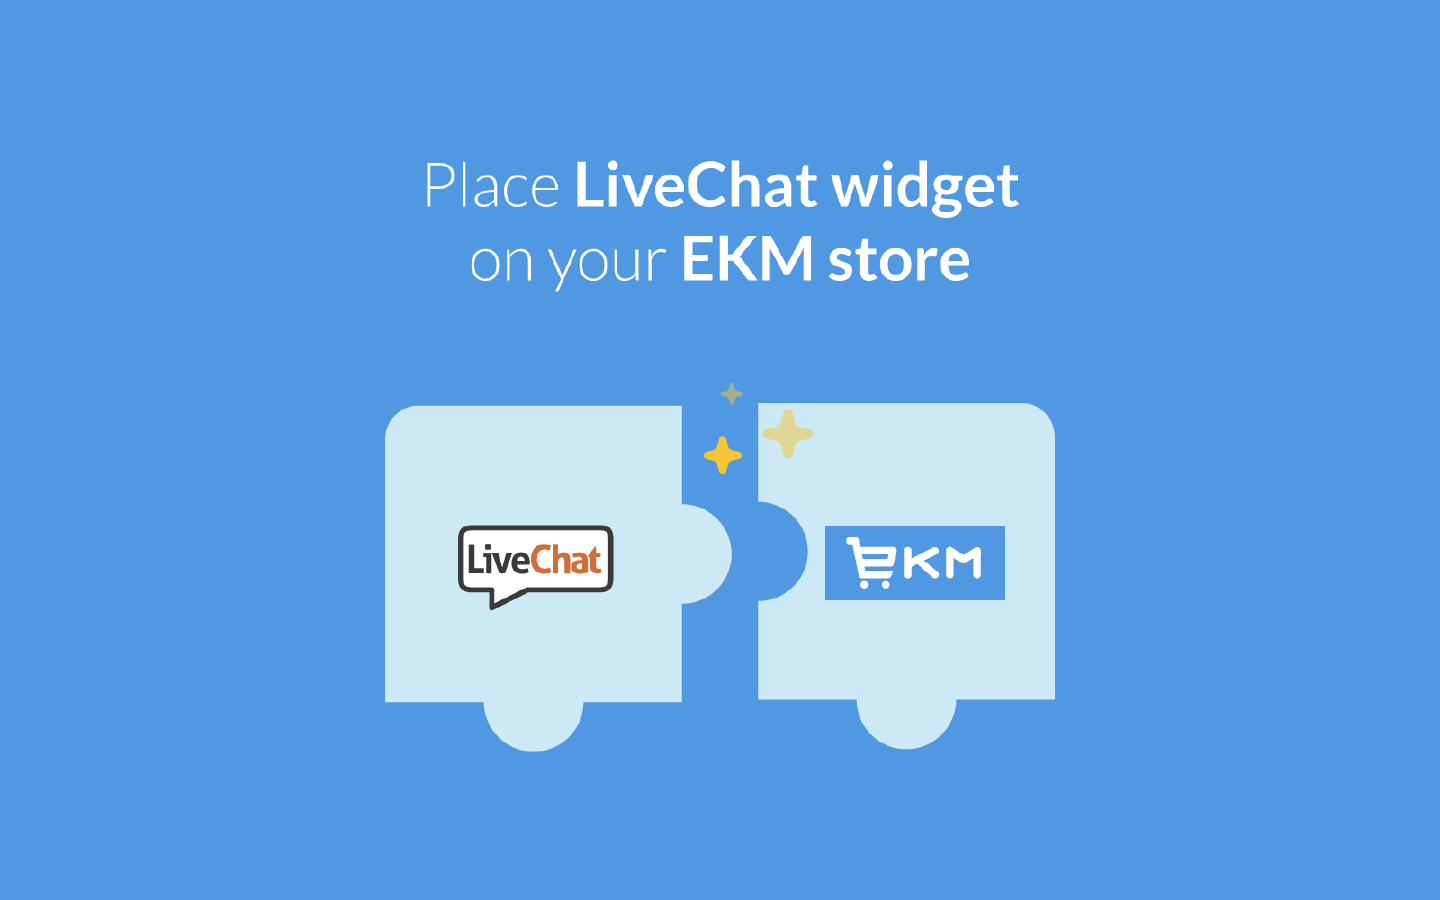 LiveChat integrates with EKM